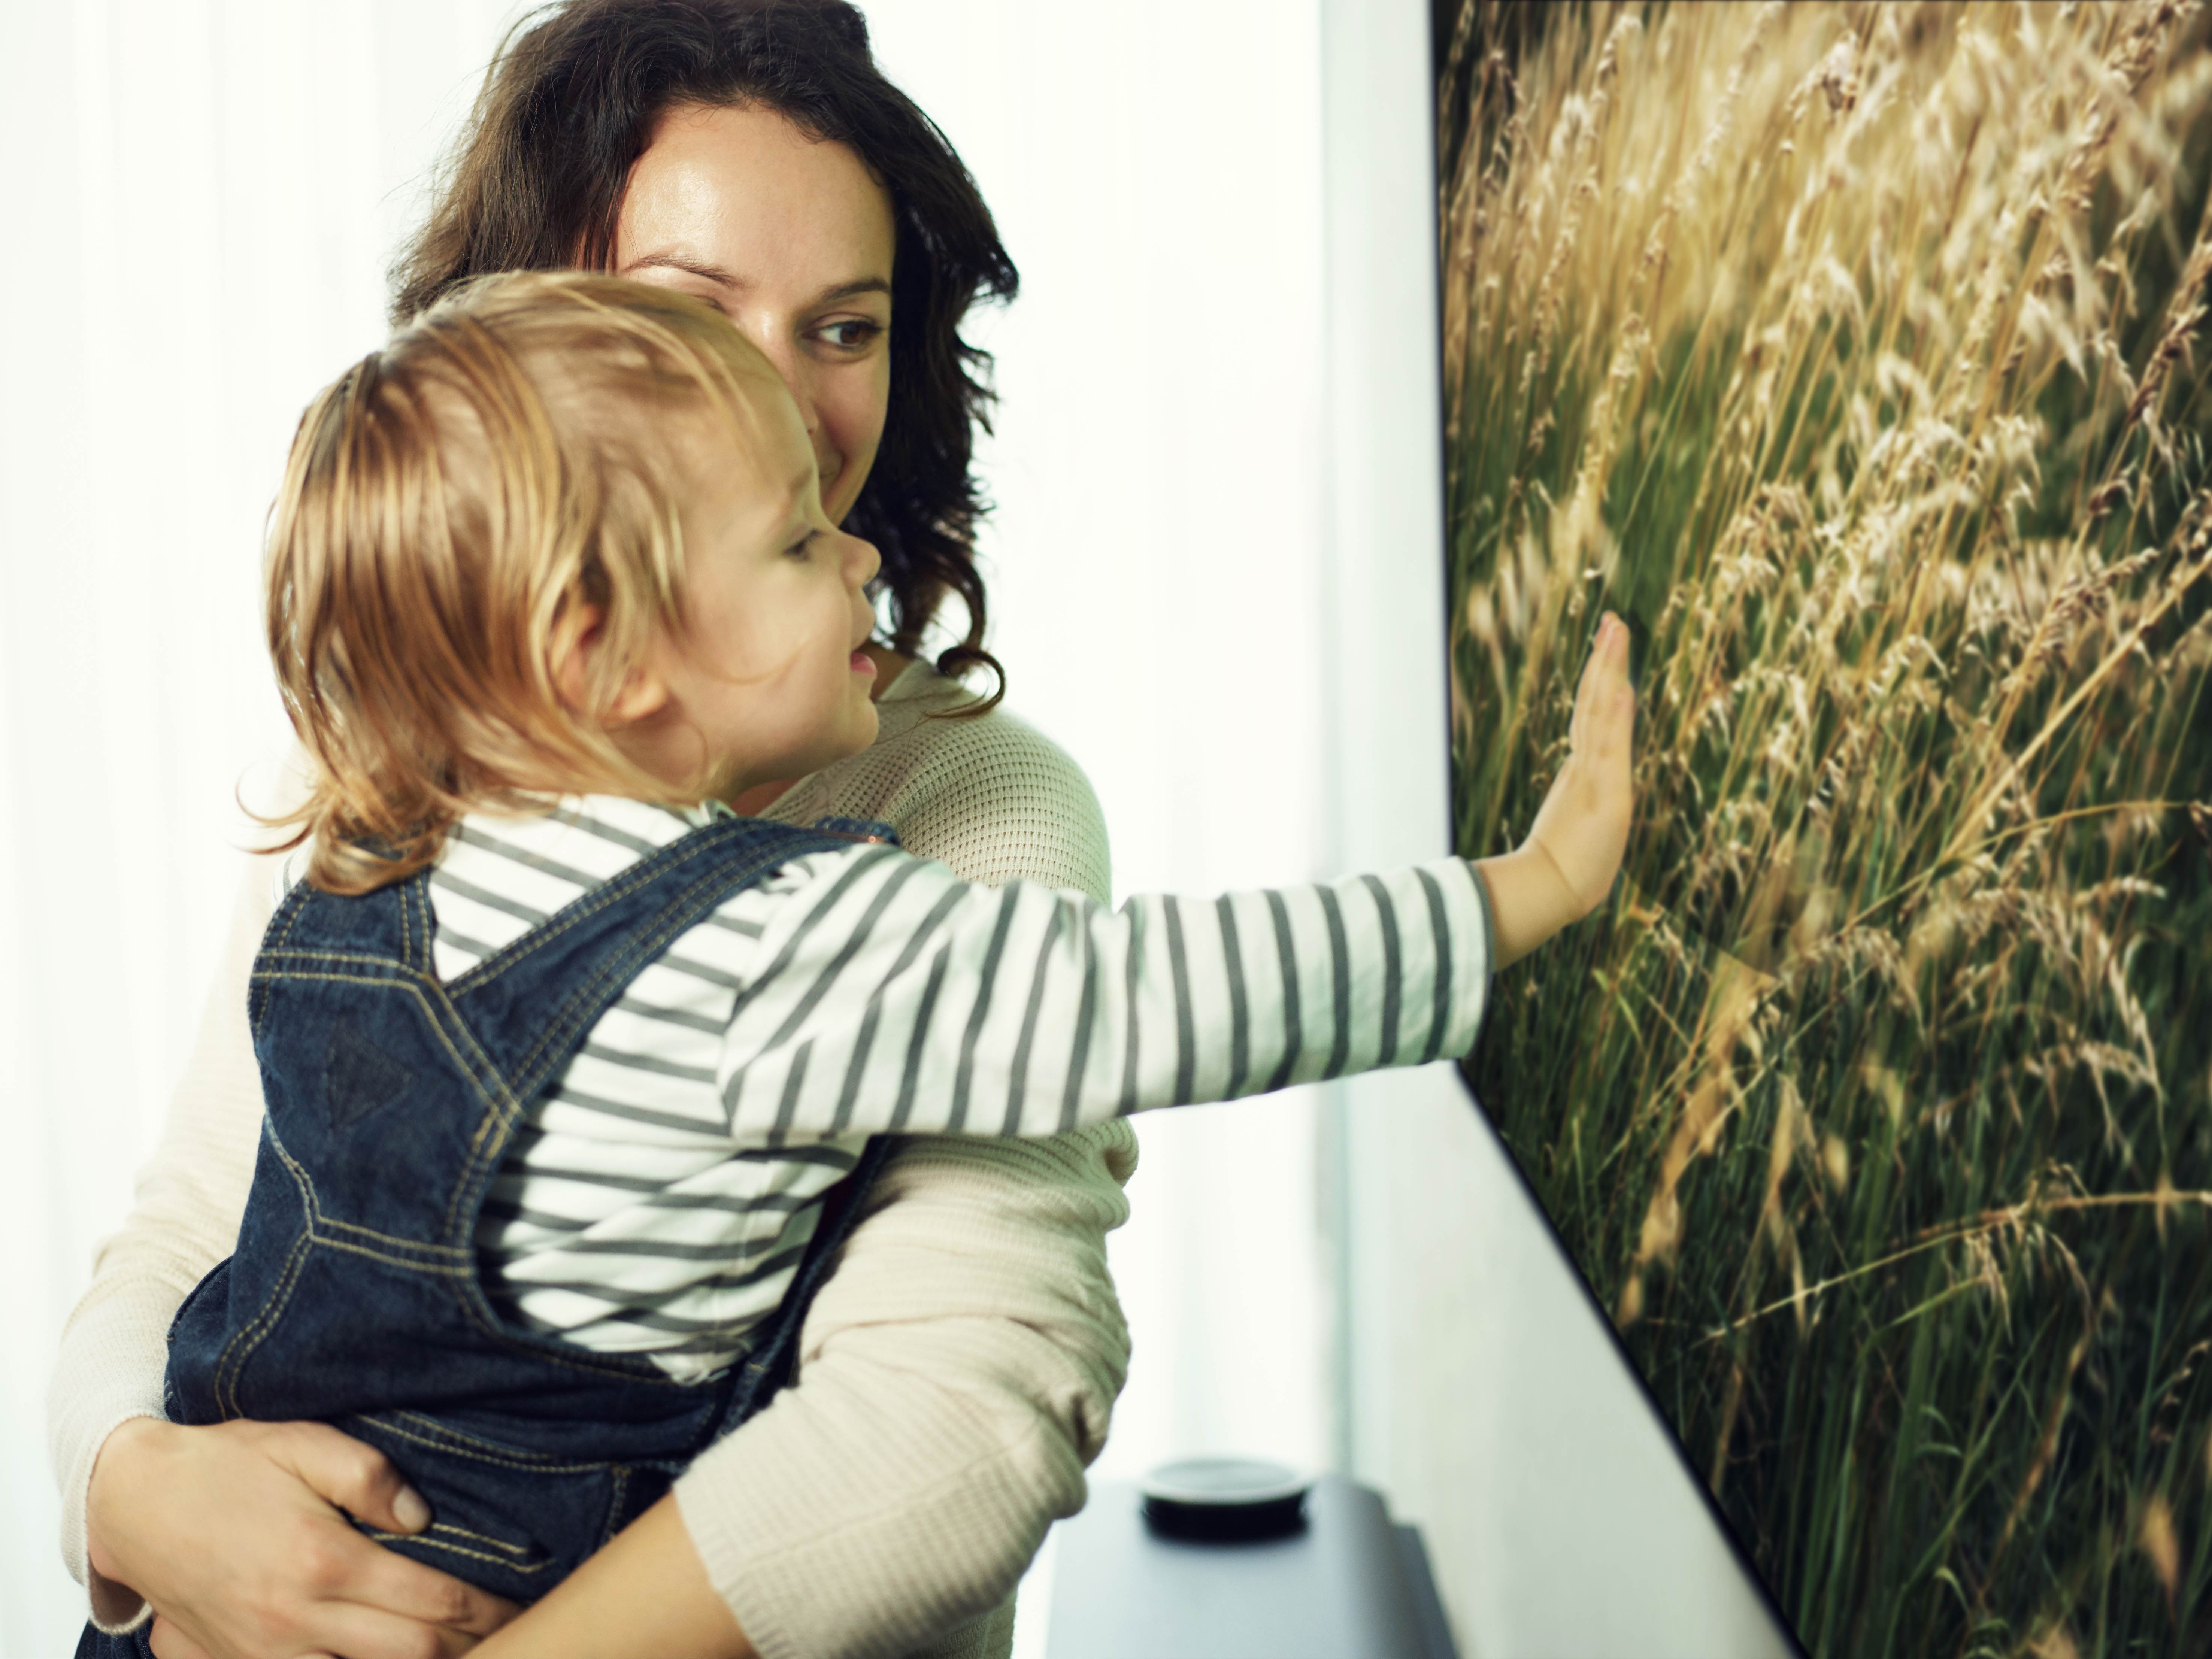 A mother and small child look at an LG SIGNATURE OLED TV W while the child is touching the screen.